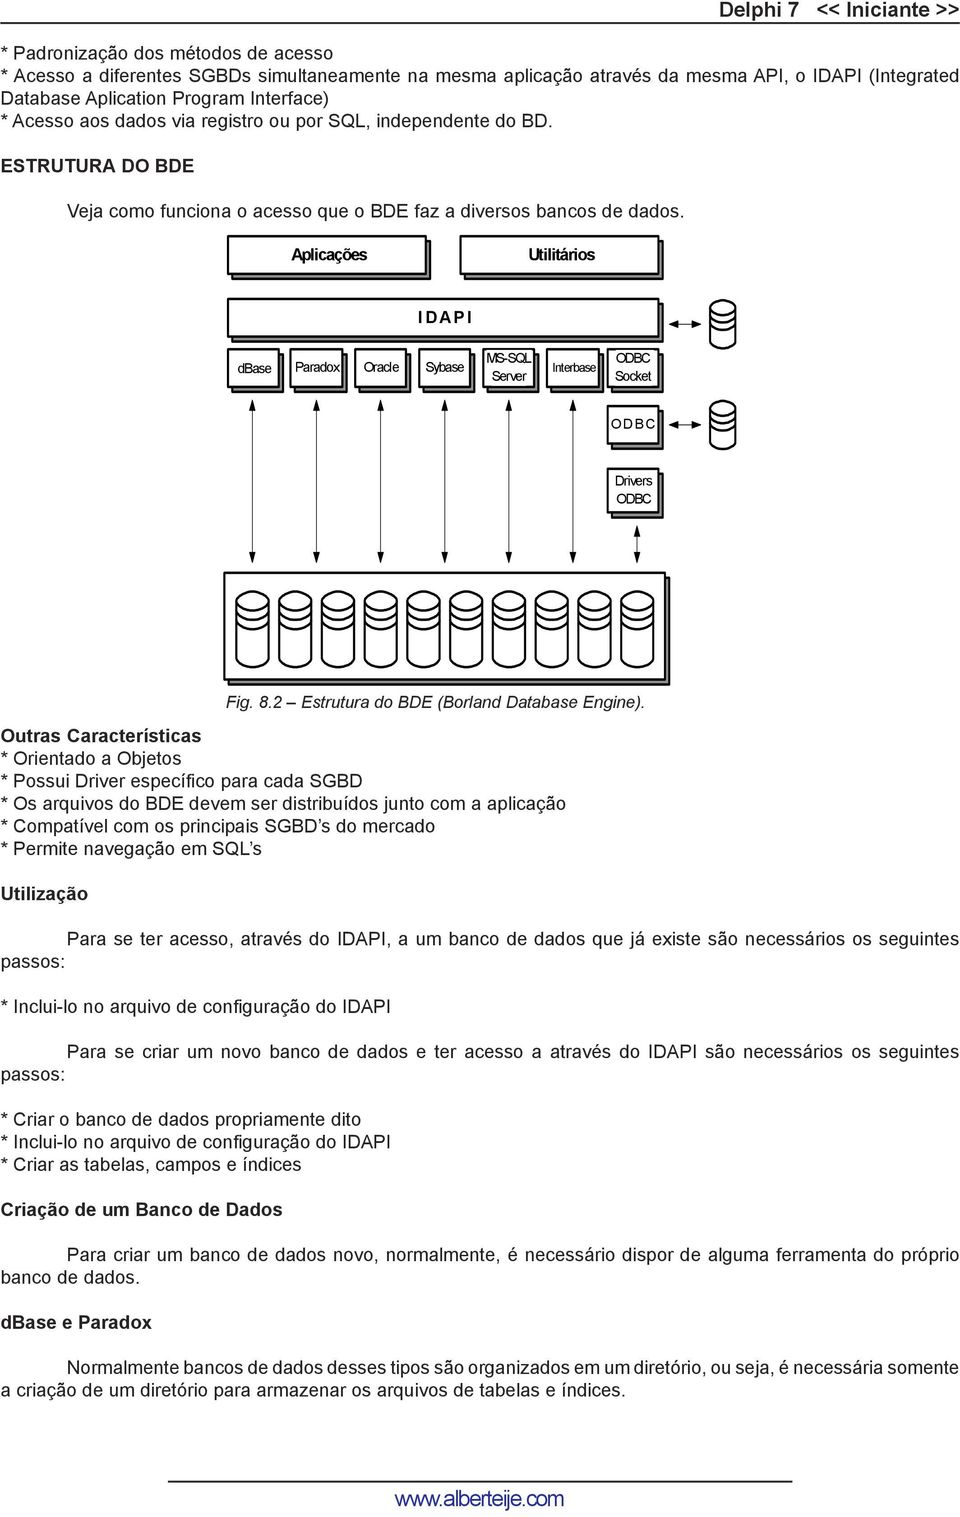 Aplicações Utilitários I D A P I dbase Paradox Oracle Sybase MS-SQL Server Interbase ODBC Socket O D B C Drivers ODBC Fig. 8.2 Estrutura do BDE (Borland Database Engine).